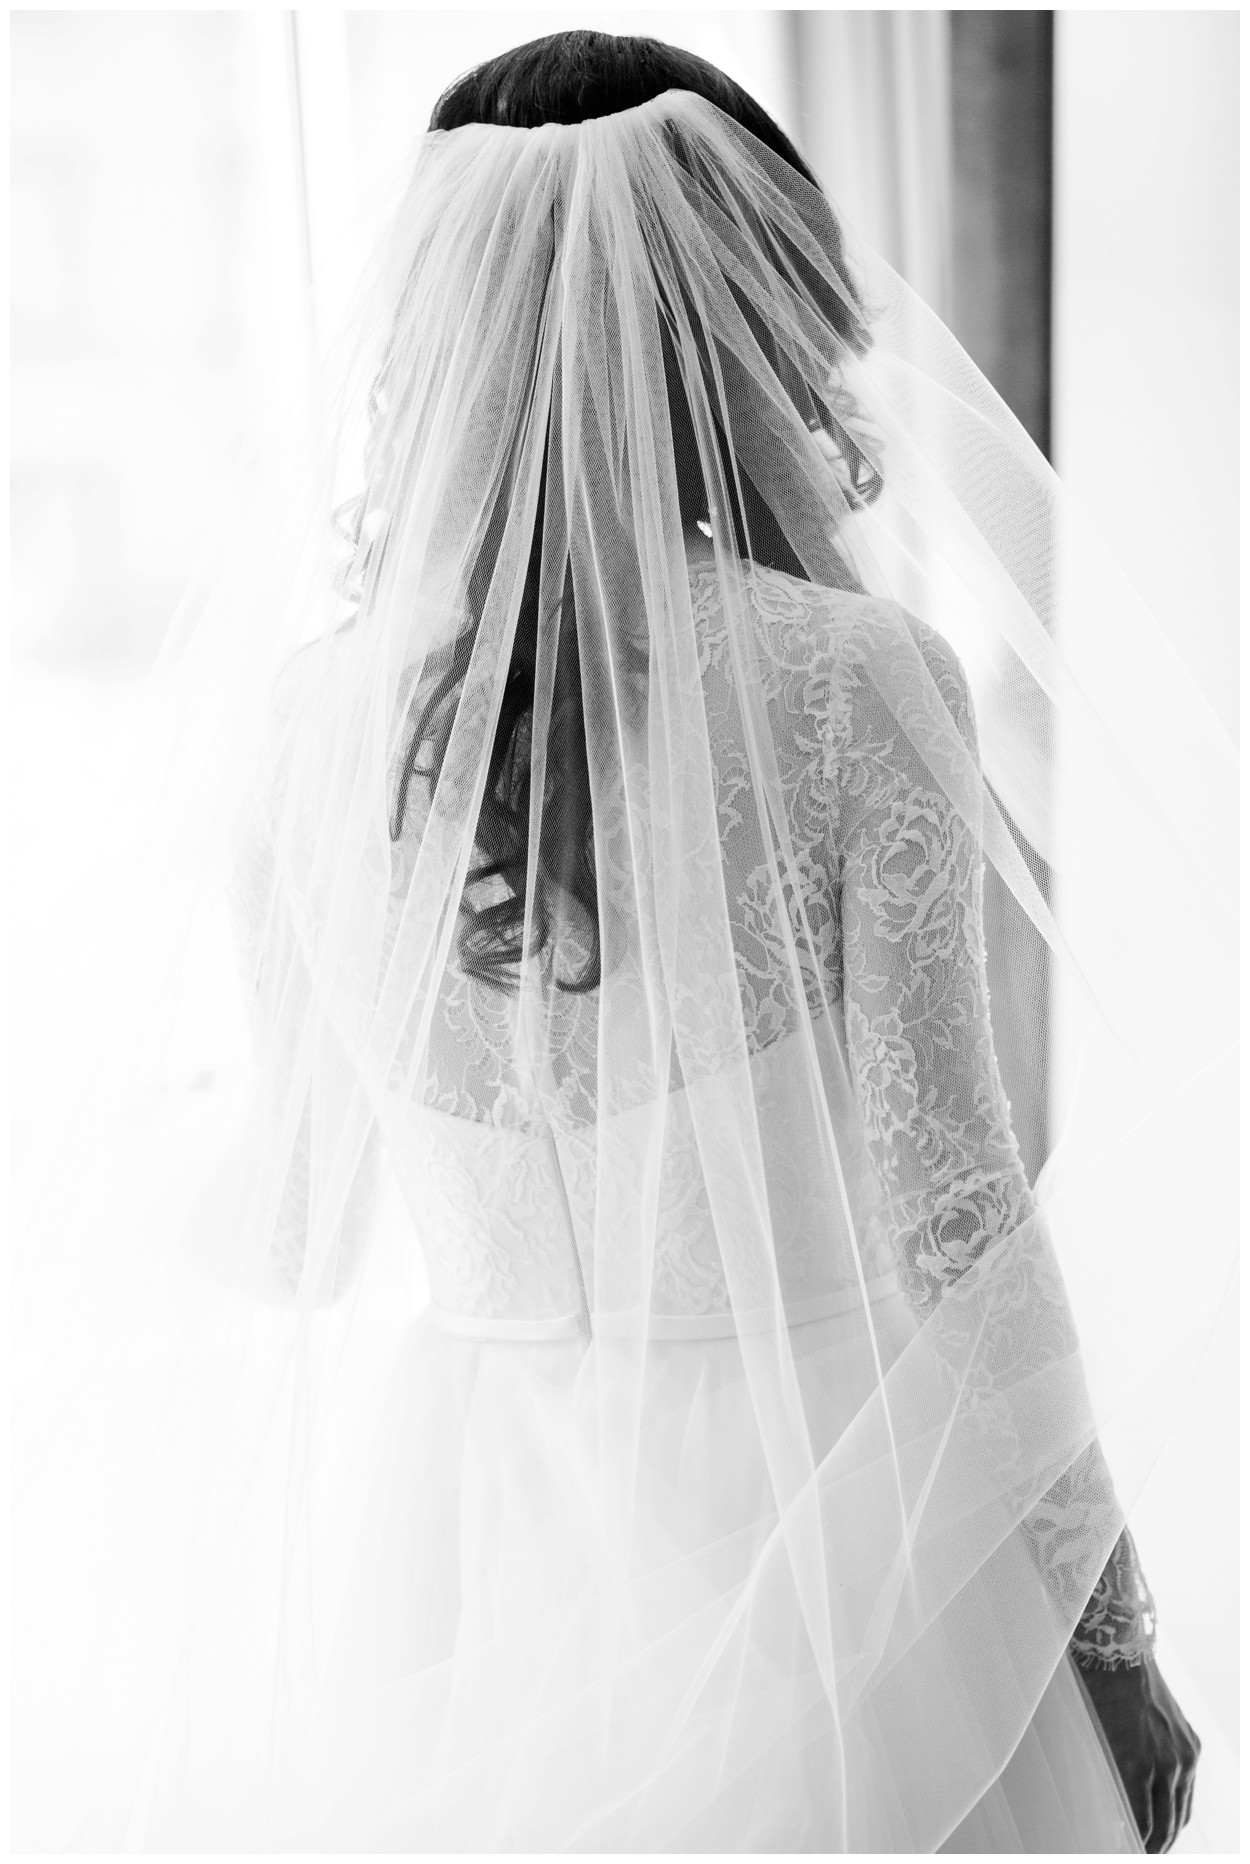 Spring Wedding in Shades of Pink at the Park Hyatt Washington DC by fine art wedding photographer Lissa Ryan Photography bride in her veil